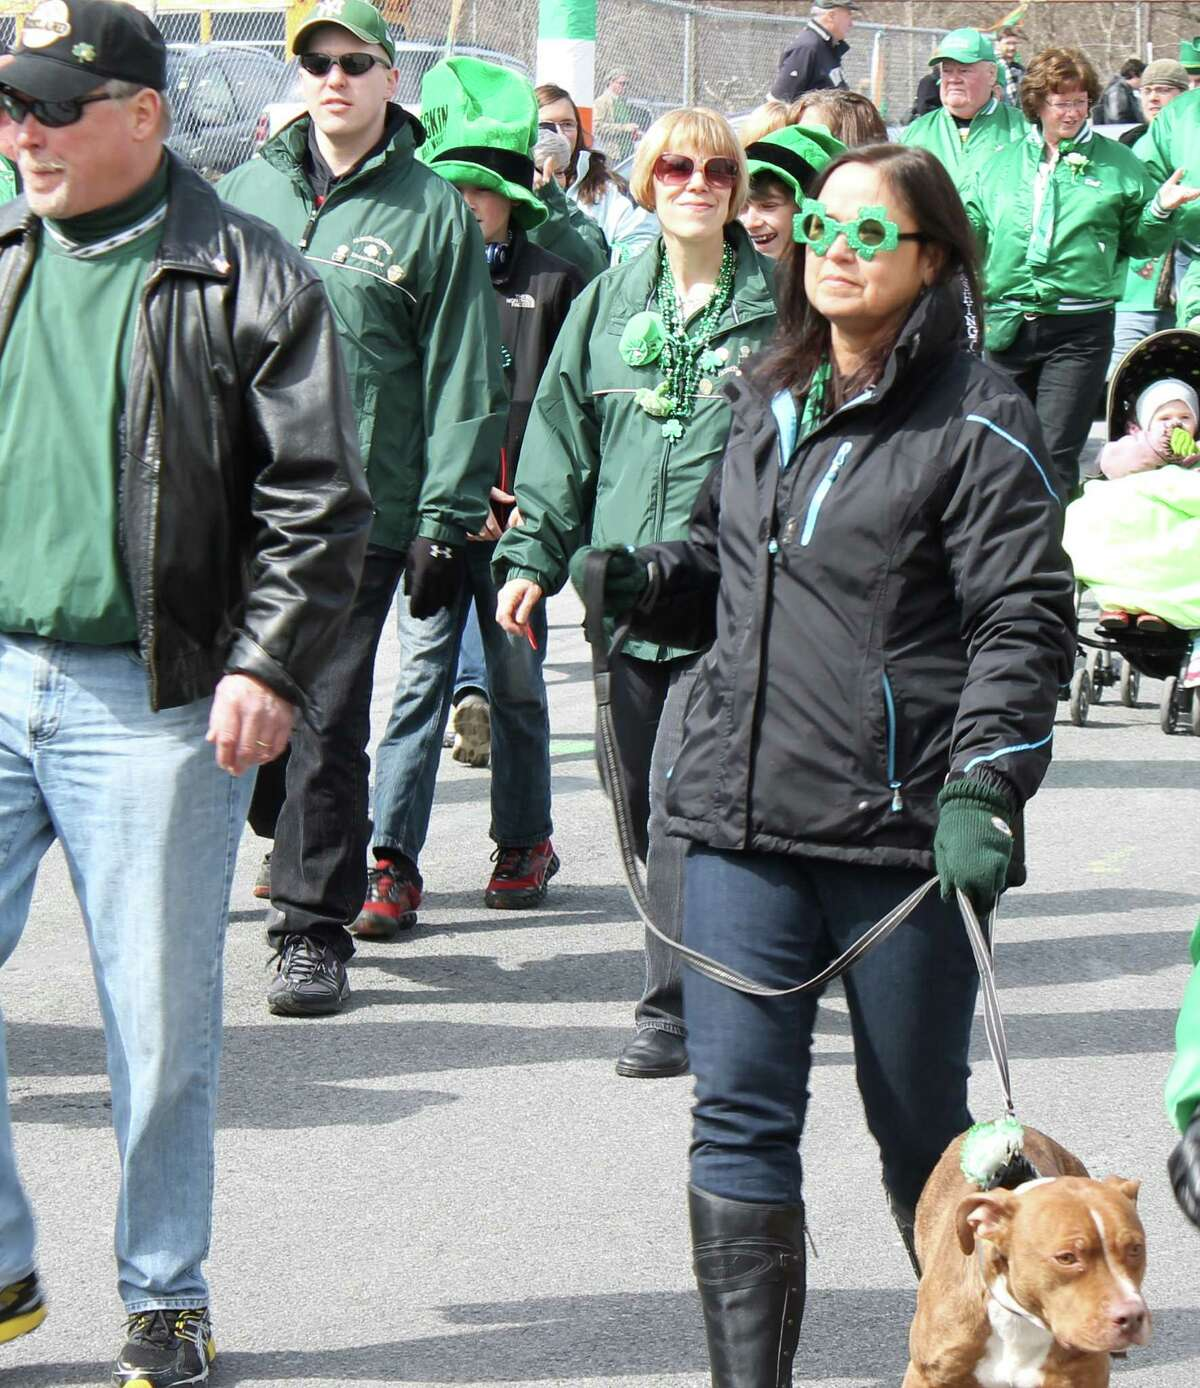 Were you Seen at the North Albany St. Patrick's Day Parade, sponsored by the North Albany Limericks, on Saturday, March 16, 2013?